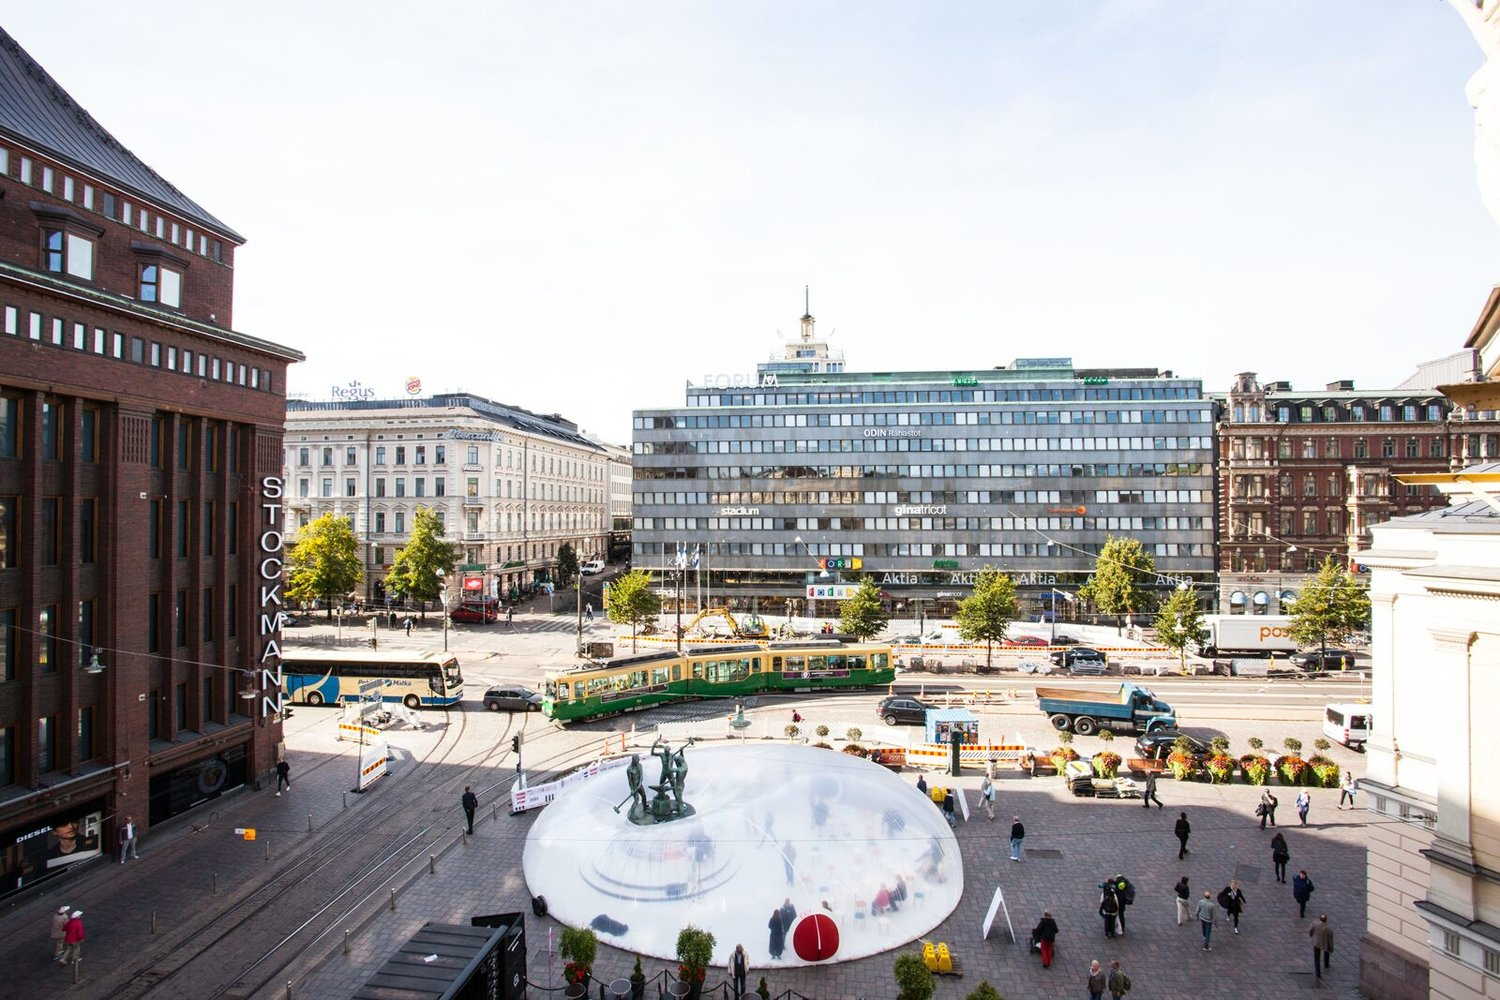 Helsinki Design Week 2019 Event Guide helsinki design week 2019 event guide HELSINKI DESIGN WEEK 2019 EVENT GUIDE HelsinkiDesignWeekFeatured